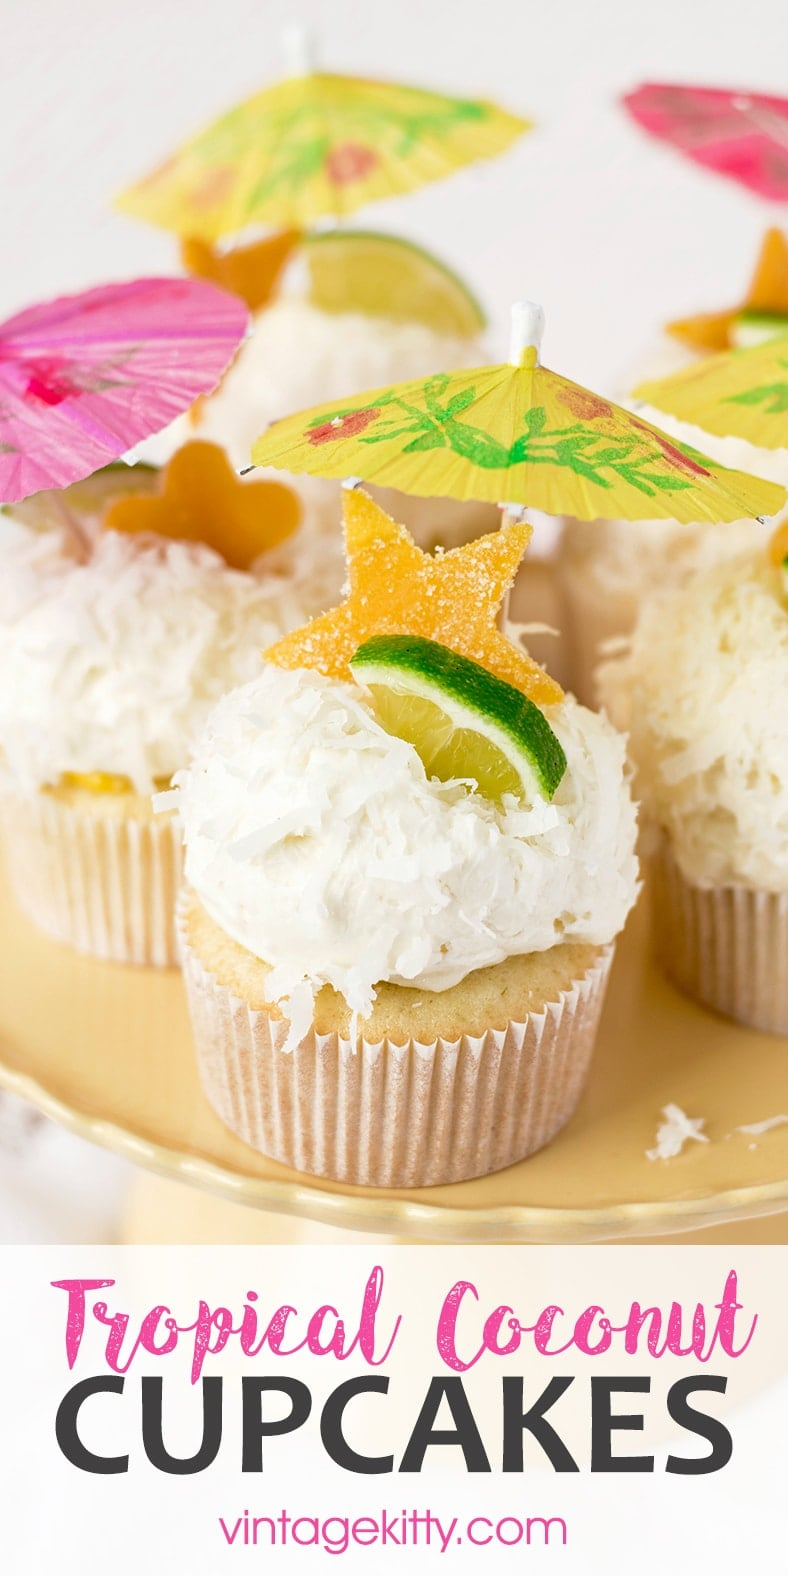 Tropical Coconut Cupcakes Pin 2 - Tropical Coconut Cupcakes with Mango Curd and Coconut Buttercream